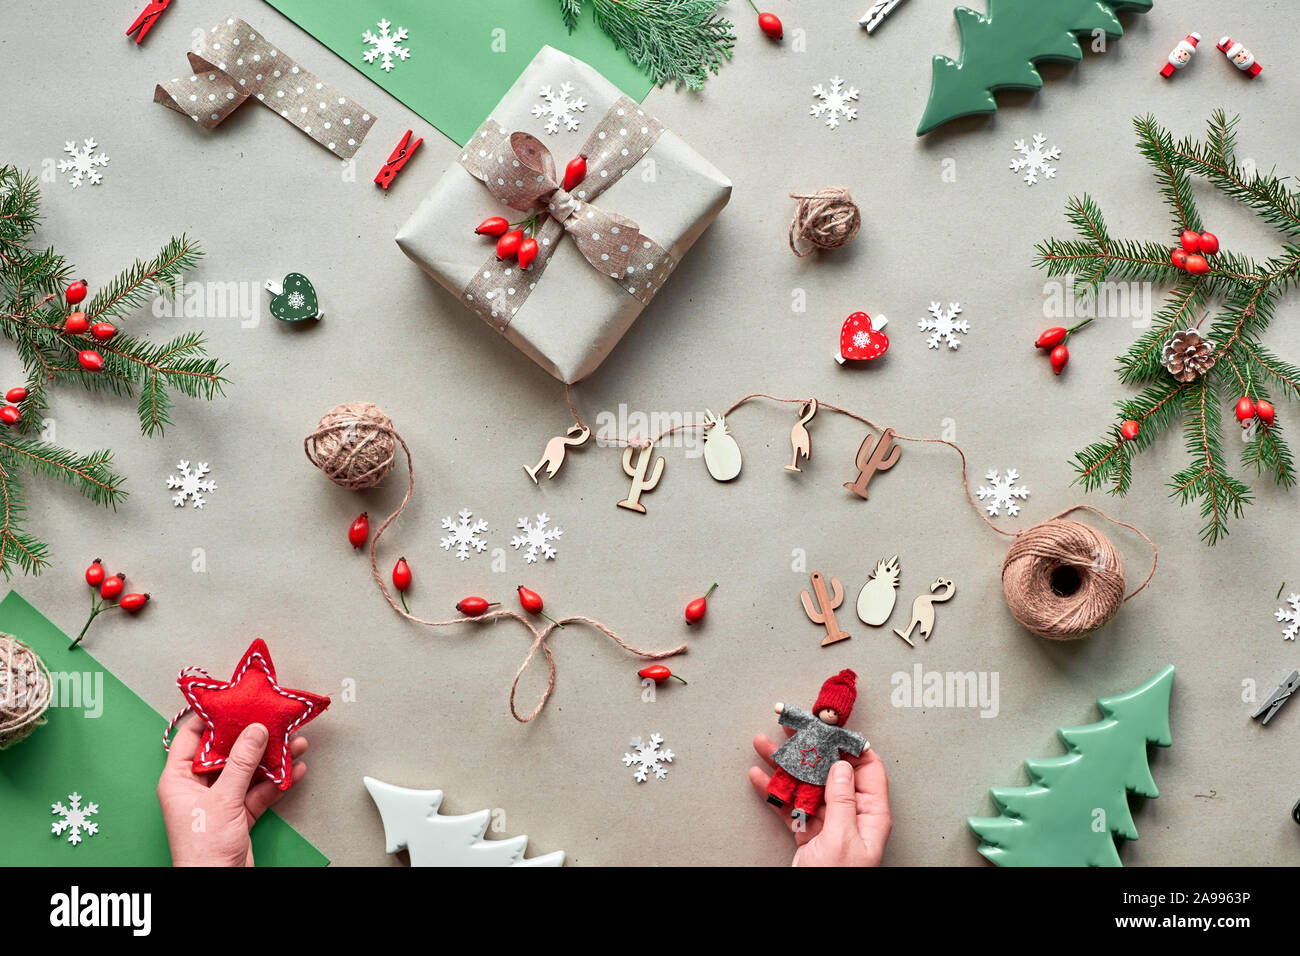 Zero Waste Christmas Concept Flat Layout On Rustic Wood Hand Crafted Gifts Natural Christmas Decorations From Biodegradable Materials Plastic Free Stock Photo Alamy